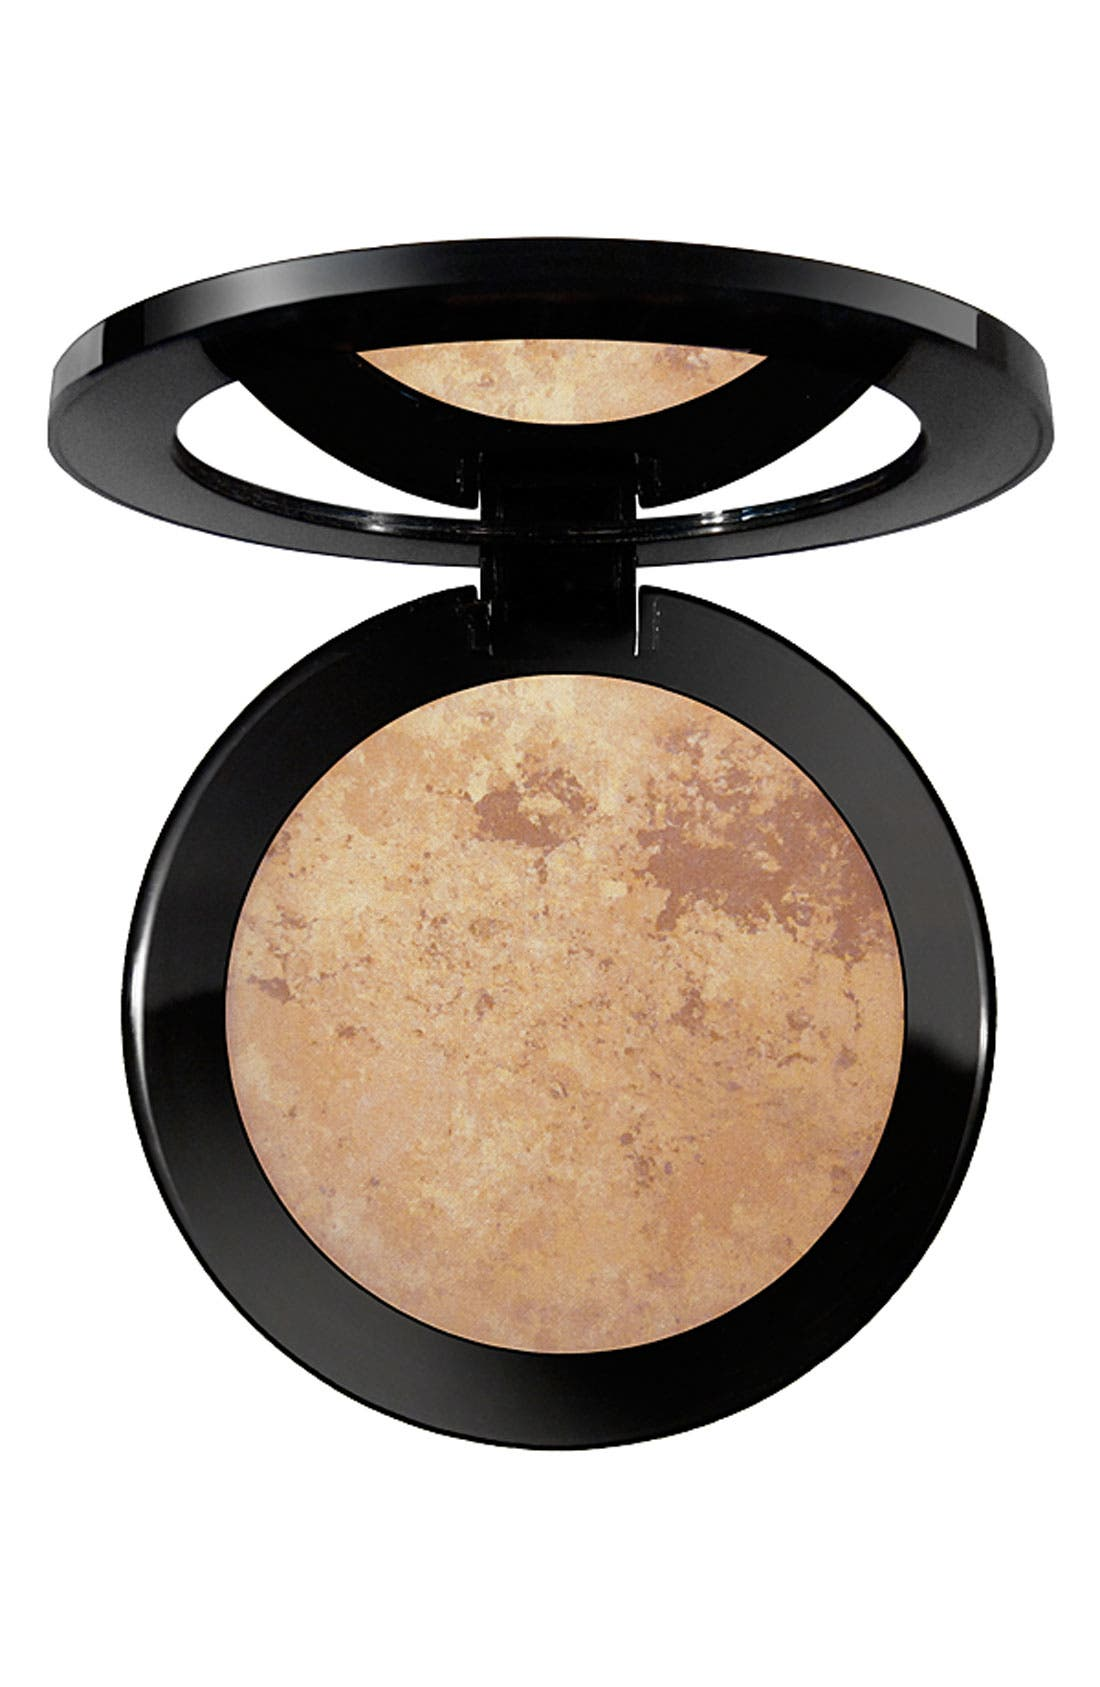 'Velour' Pressed Powder,                         Main,                         color, 256